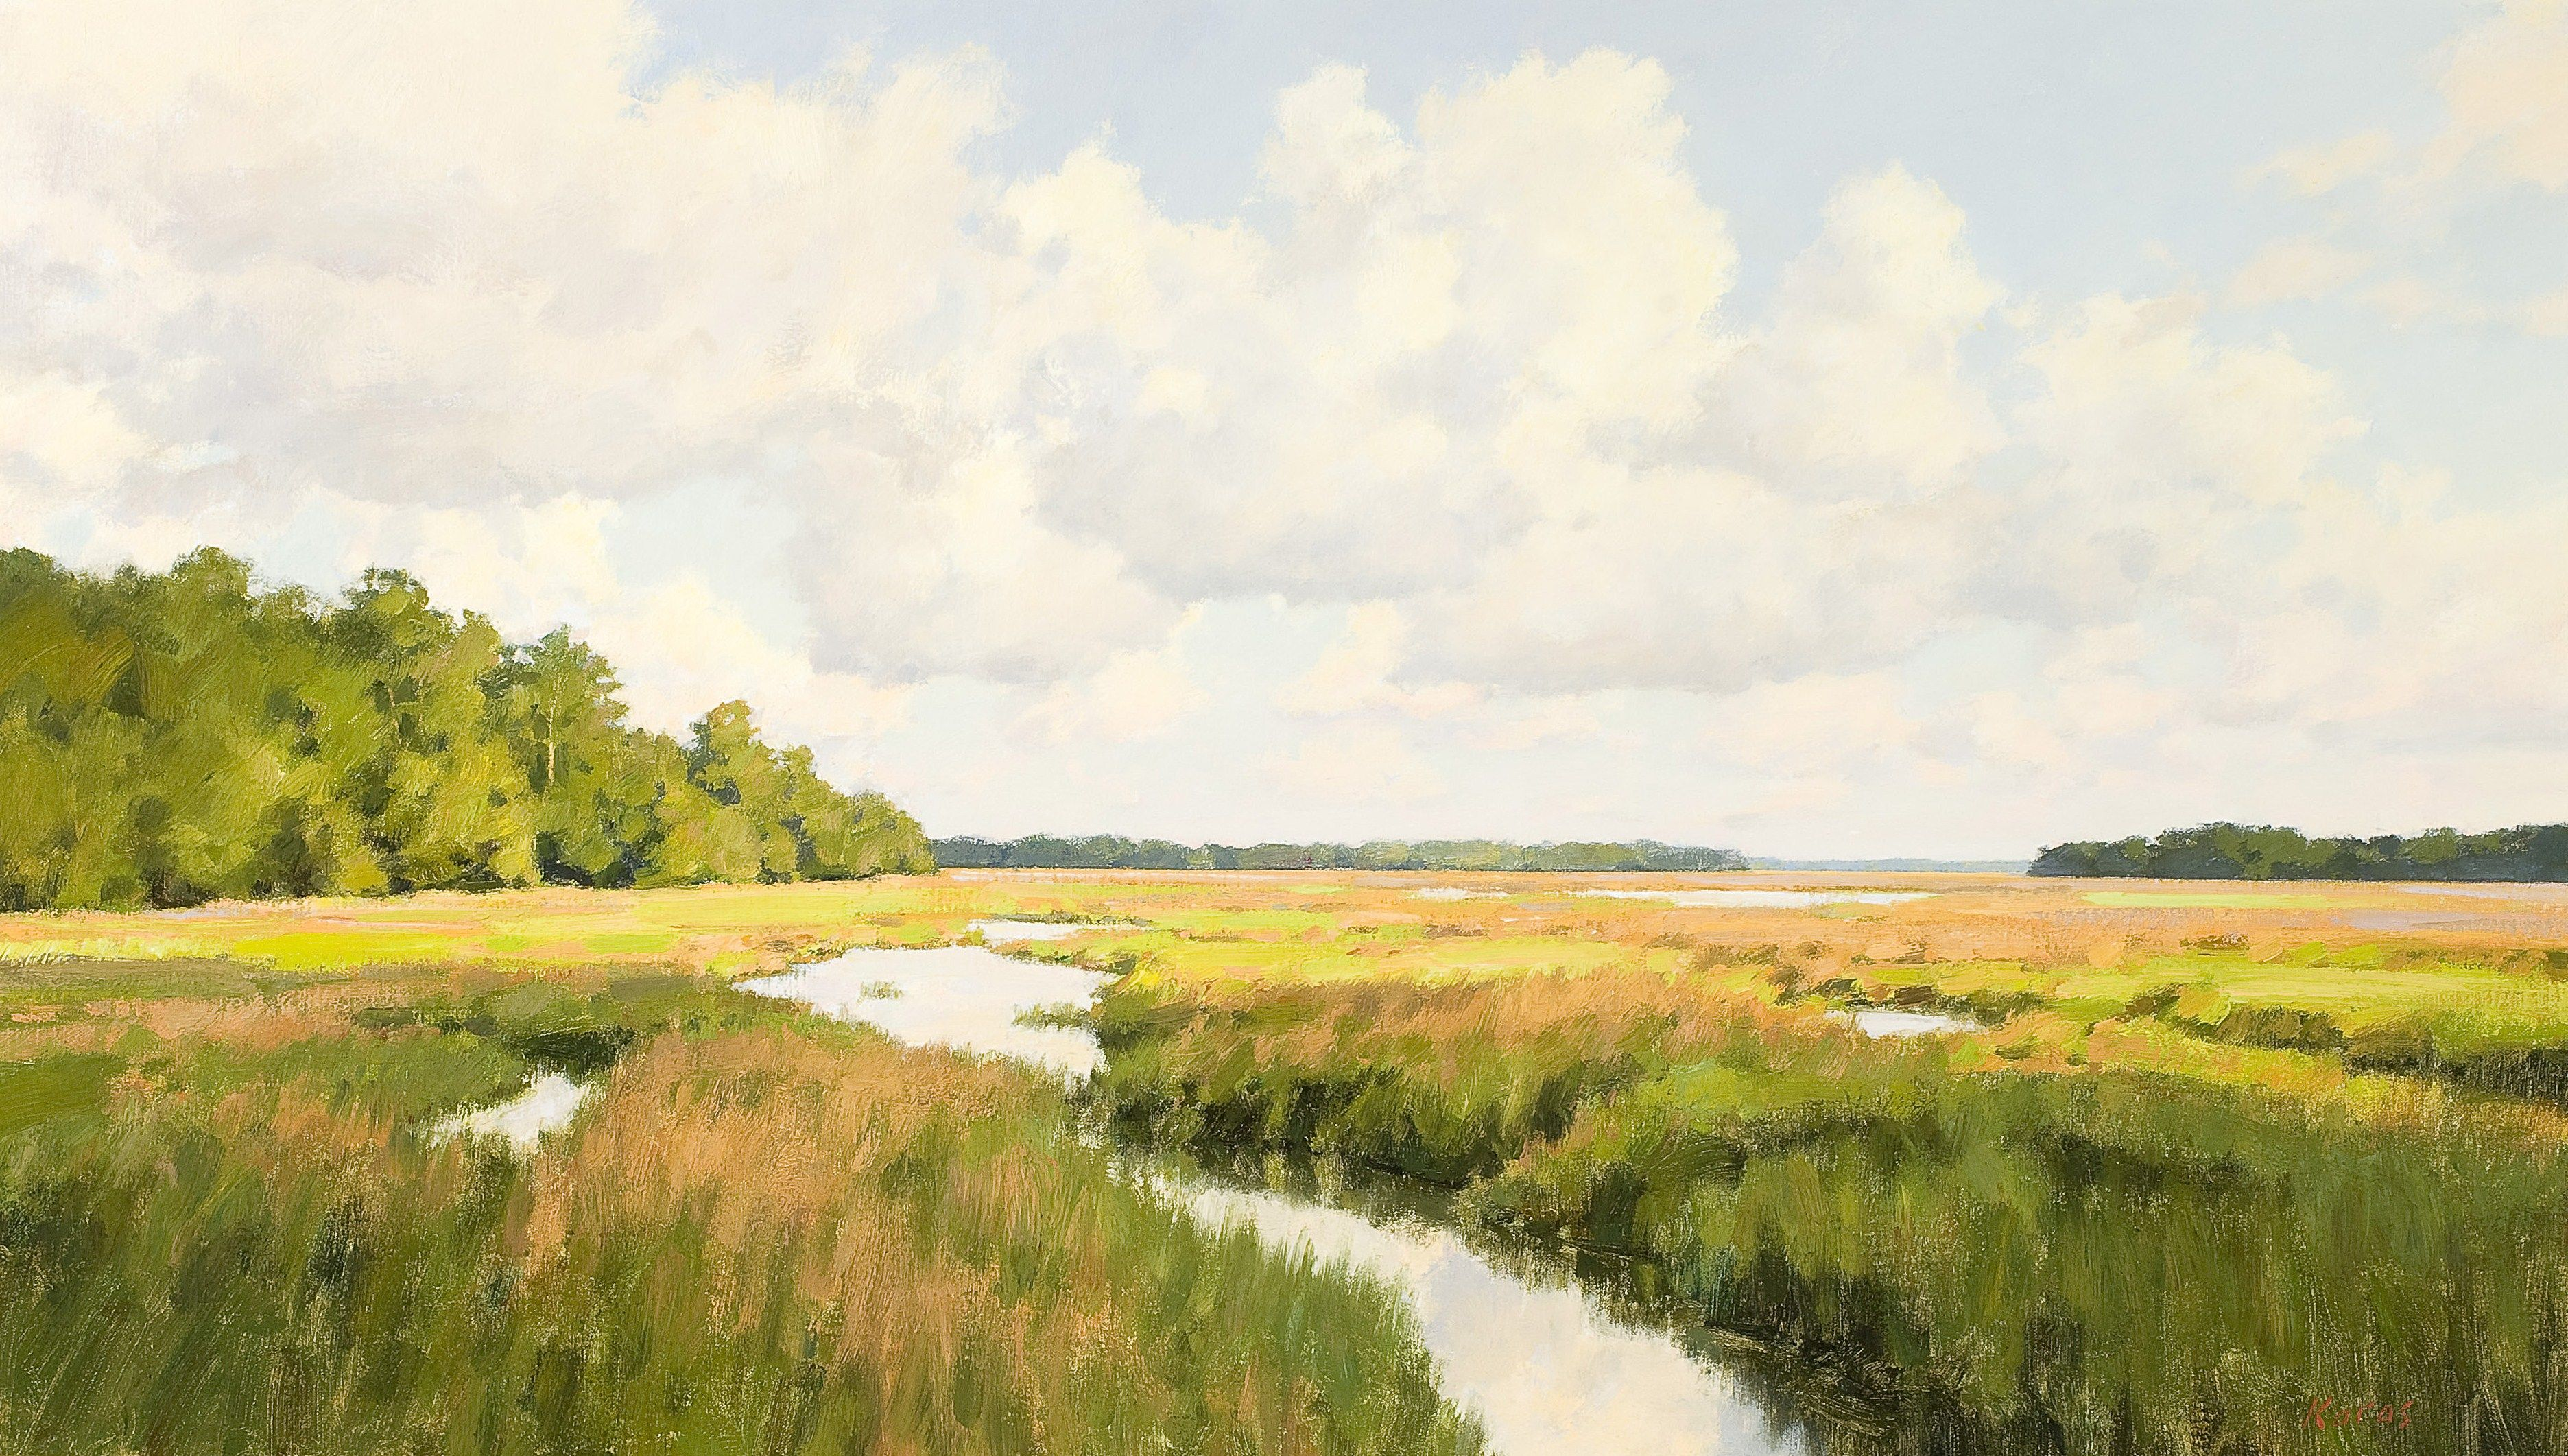 Quot Marsh Vista Quot By Michael B Karas See More Of His Work By